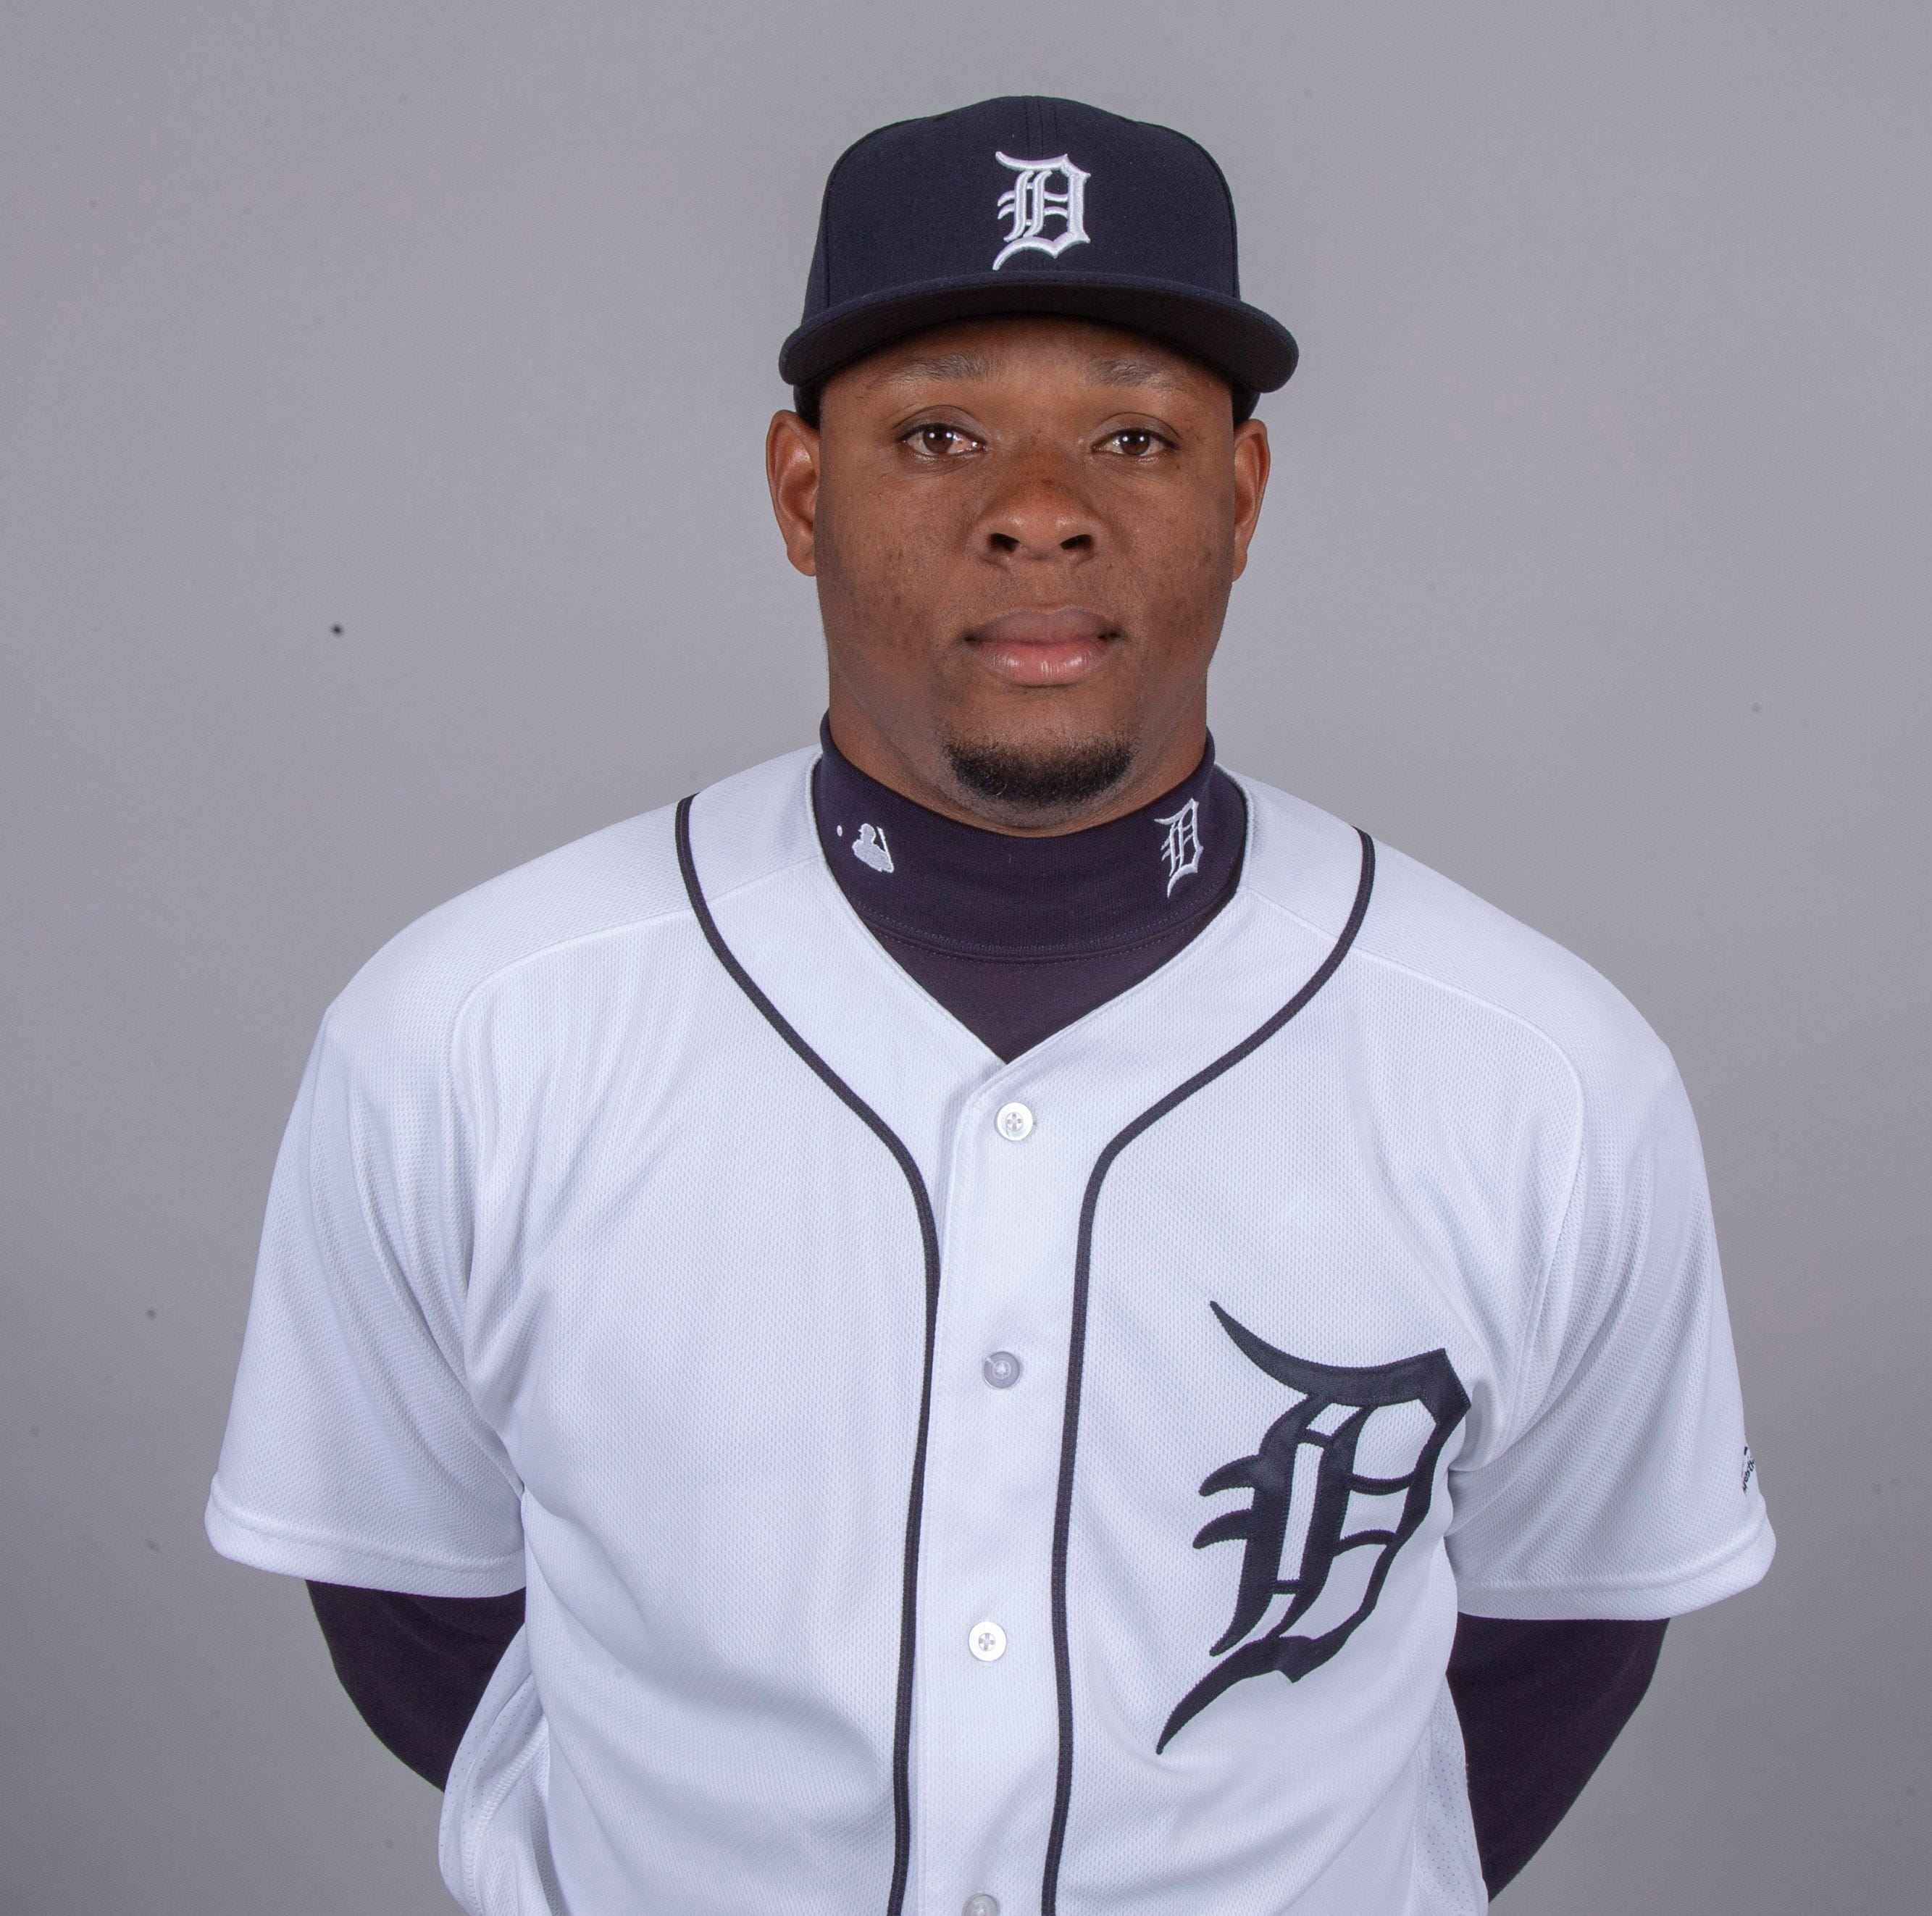 Detroit Tigers' Gregory Soto gets quick call to majors, thanks to doubleheader